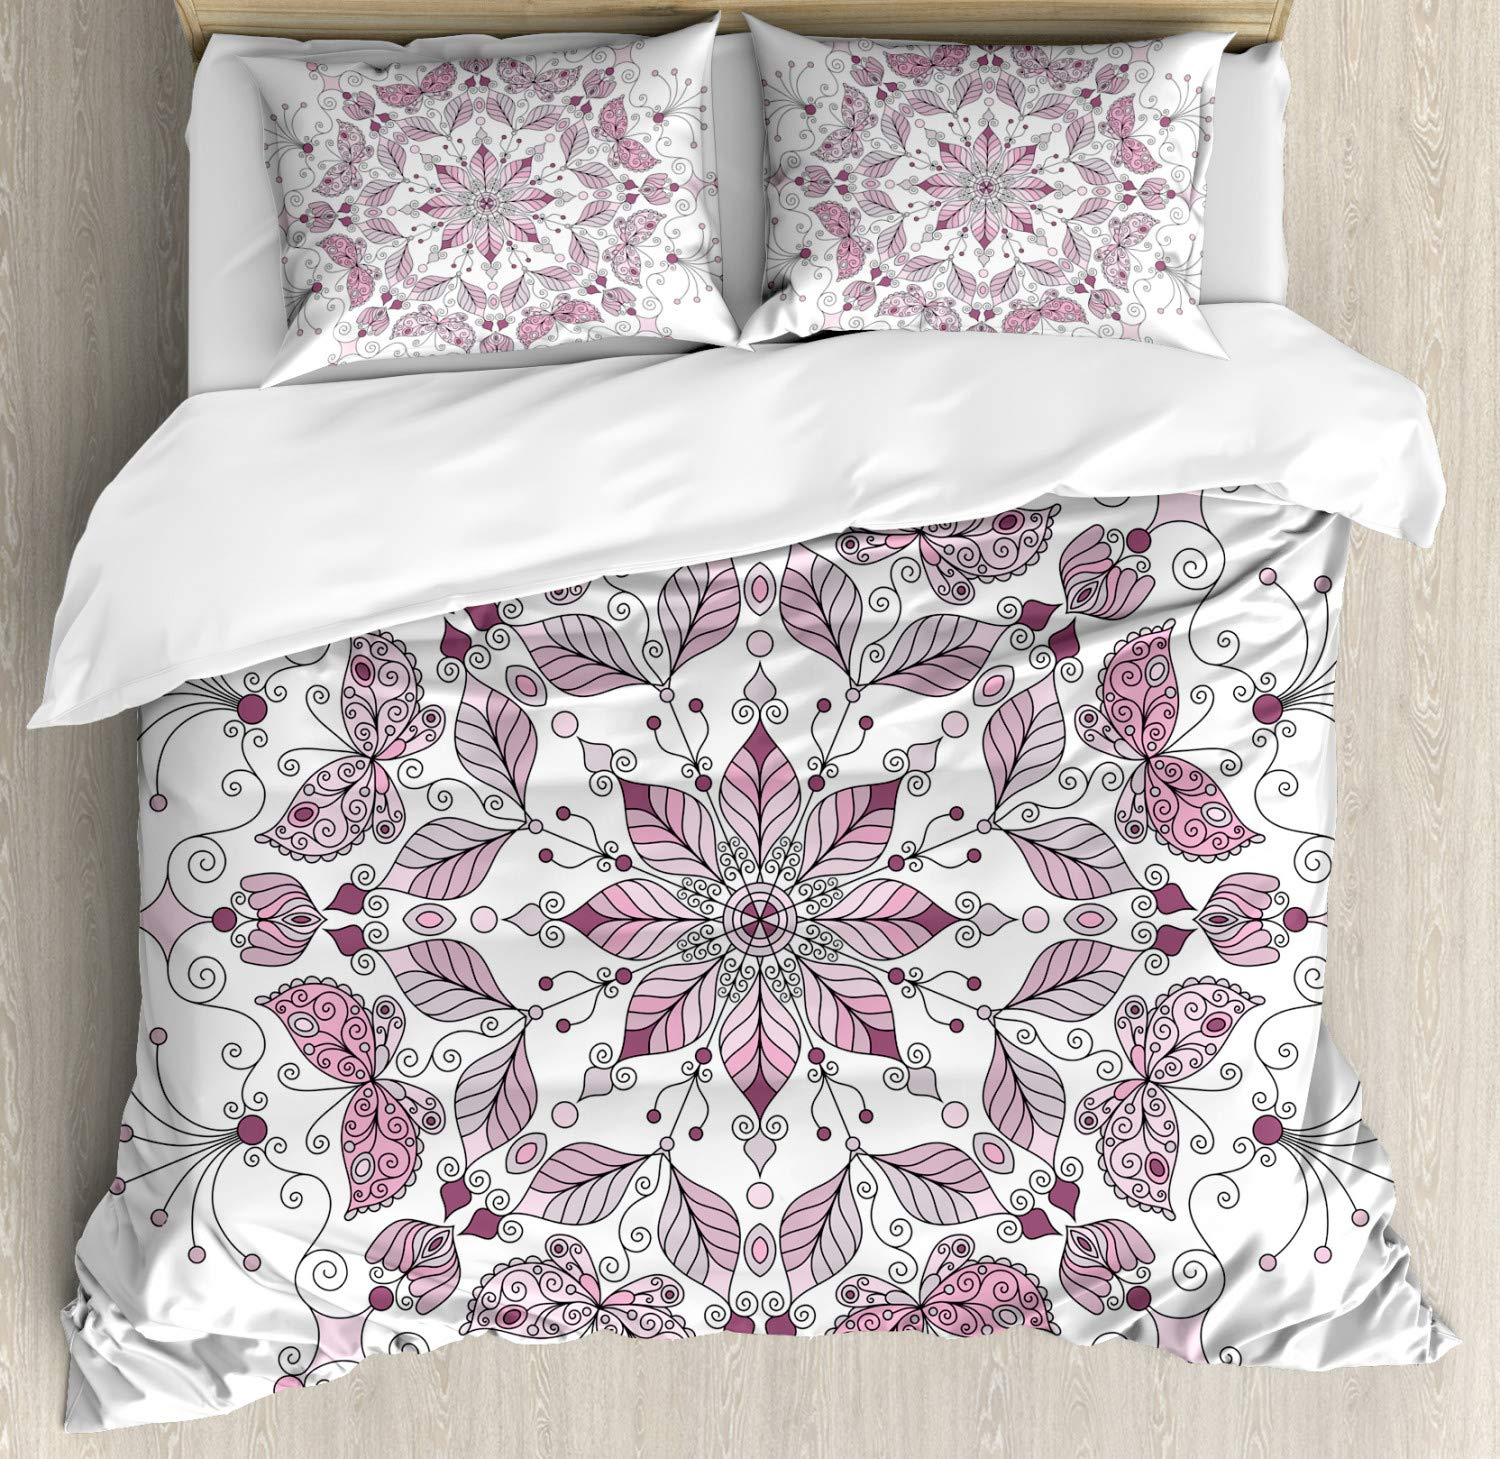 Purple Mandala Duvet Cover Set Lacy Pastel Floral With Butterfly And Lotus Meditation Design Decorative 3 Piece Bedding Set